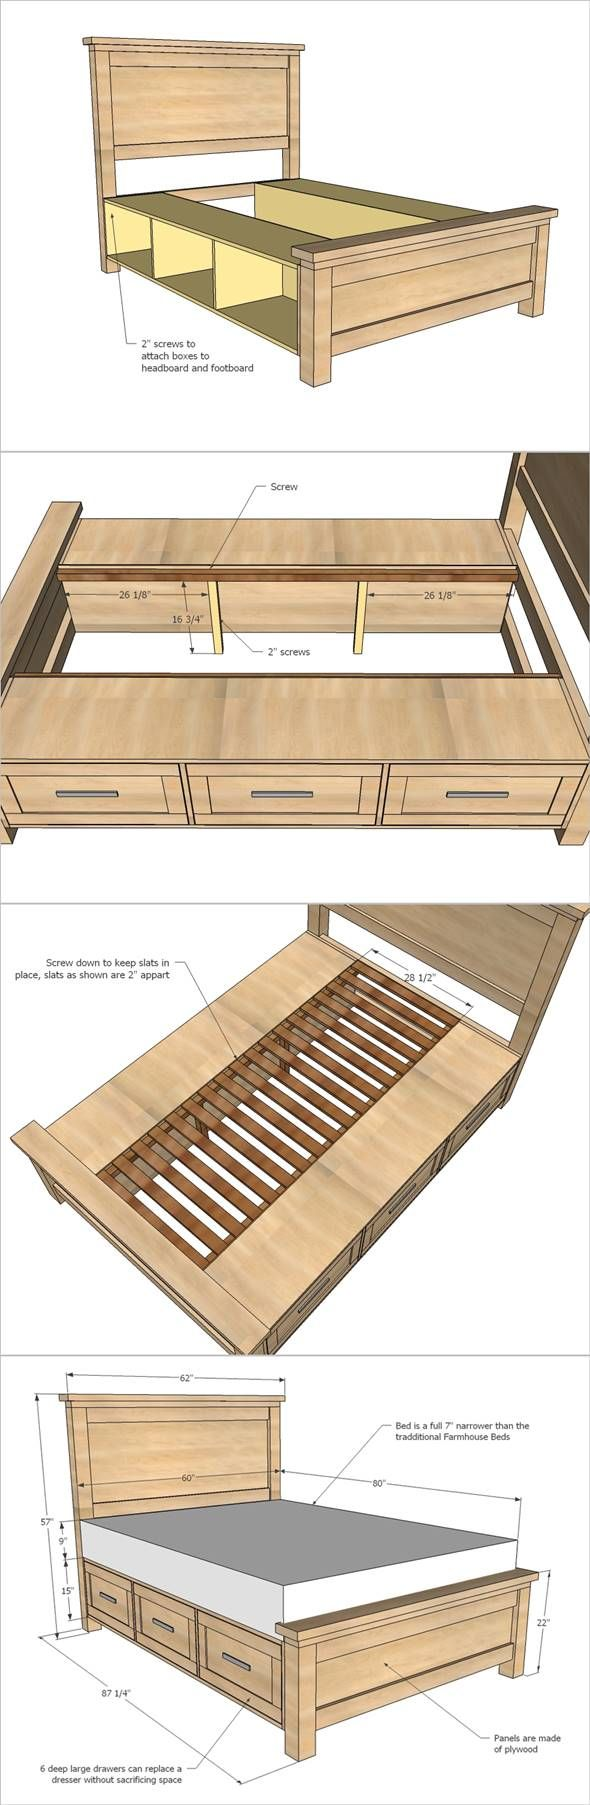 Japanese bed frame design - Creative Ideas How To Build A Farmhouse Storage Bed With Drawers